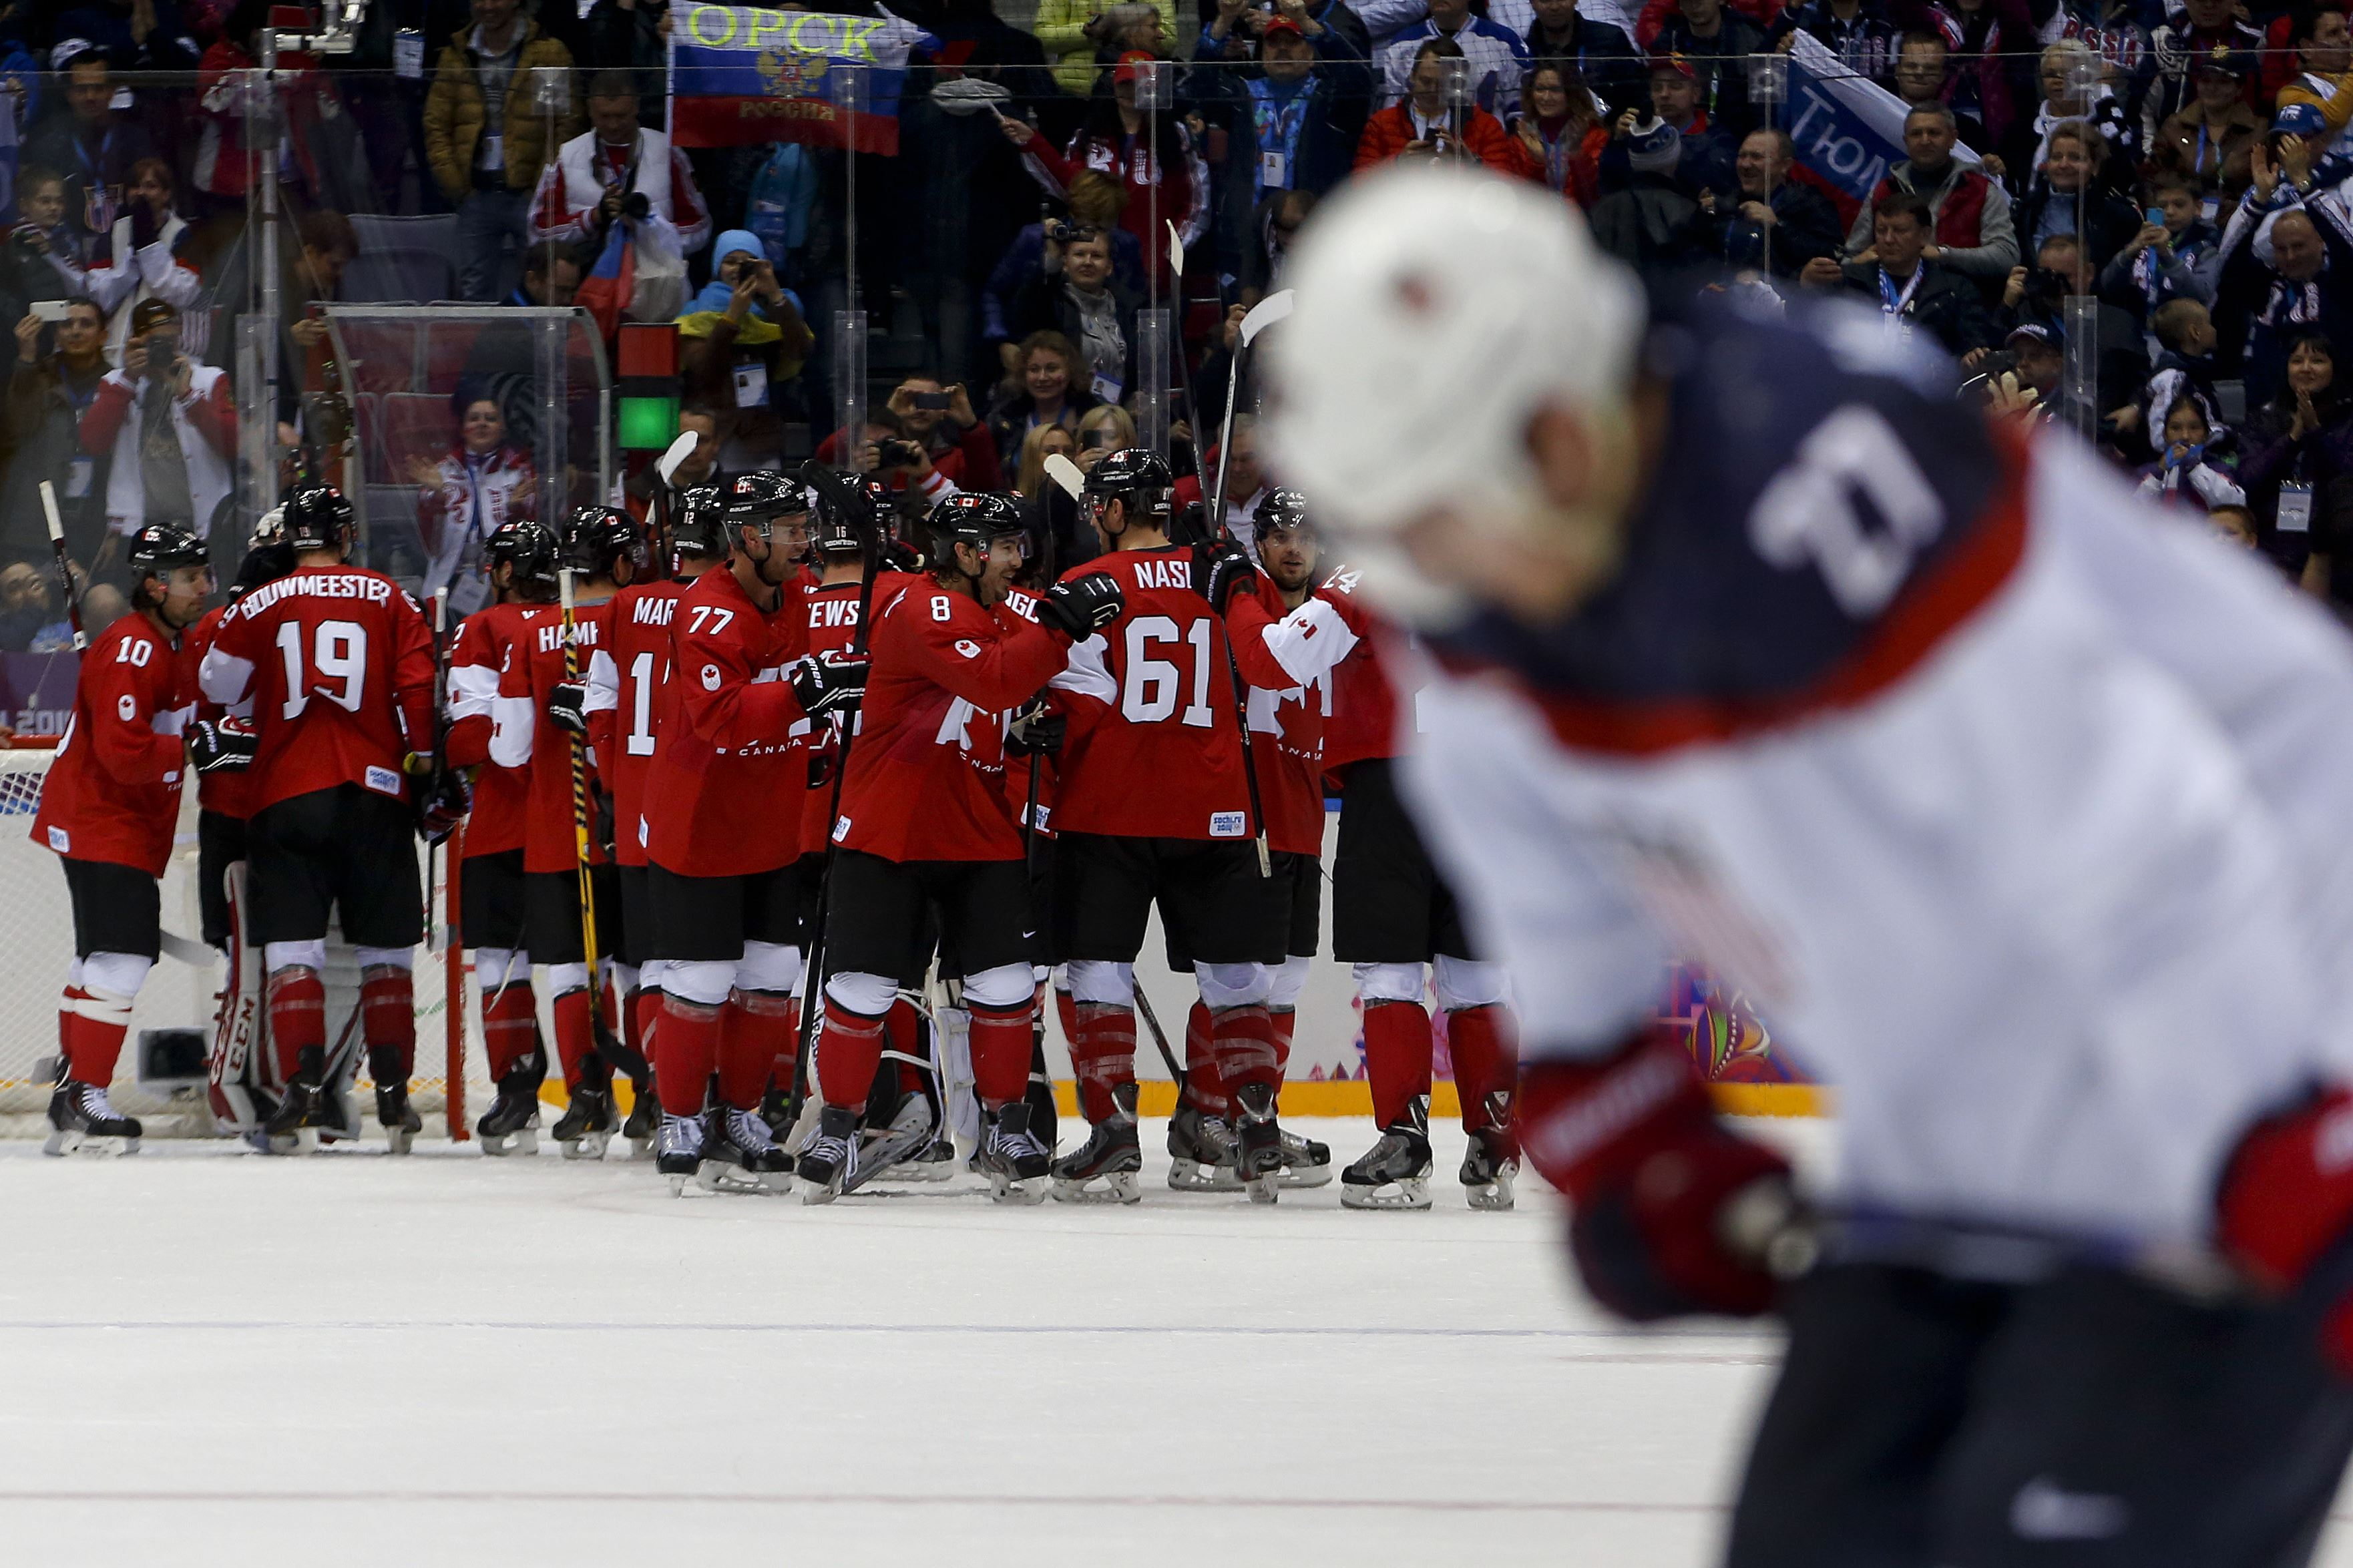 Sochi-Olympics-Ice-Hockey-Men-Loss